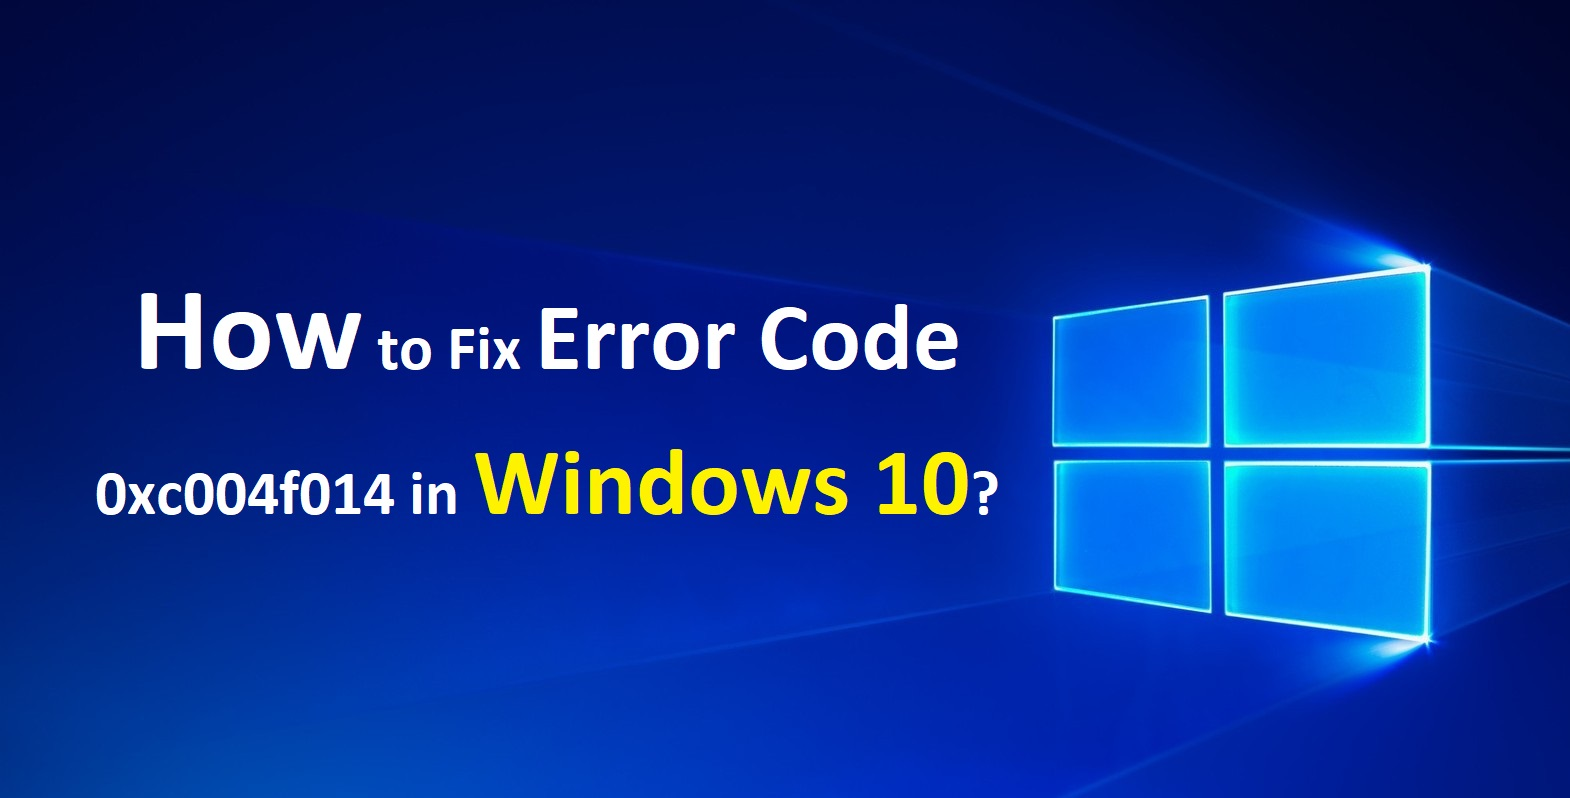 error-code-windows-10